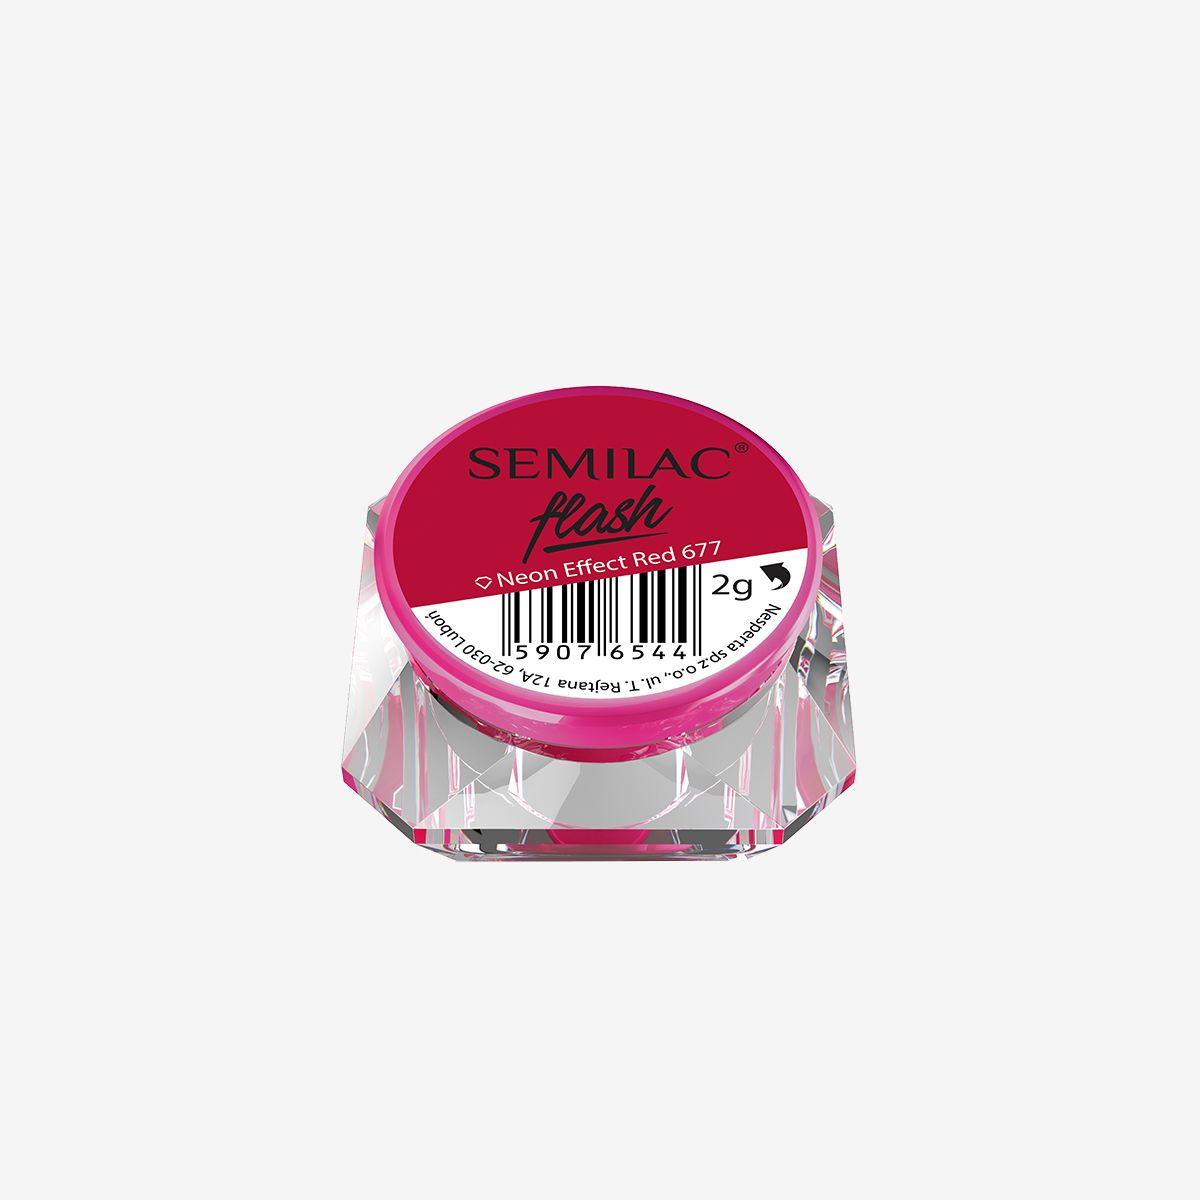 Semilac Flash Neon Effect Red 677 - FlowertushBeauty